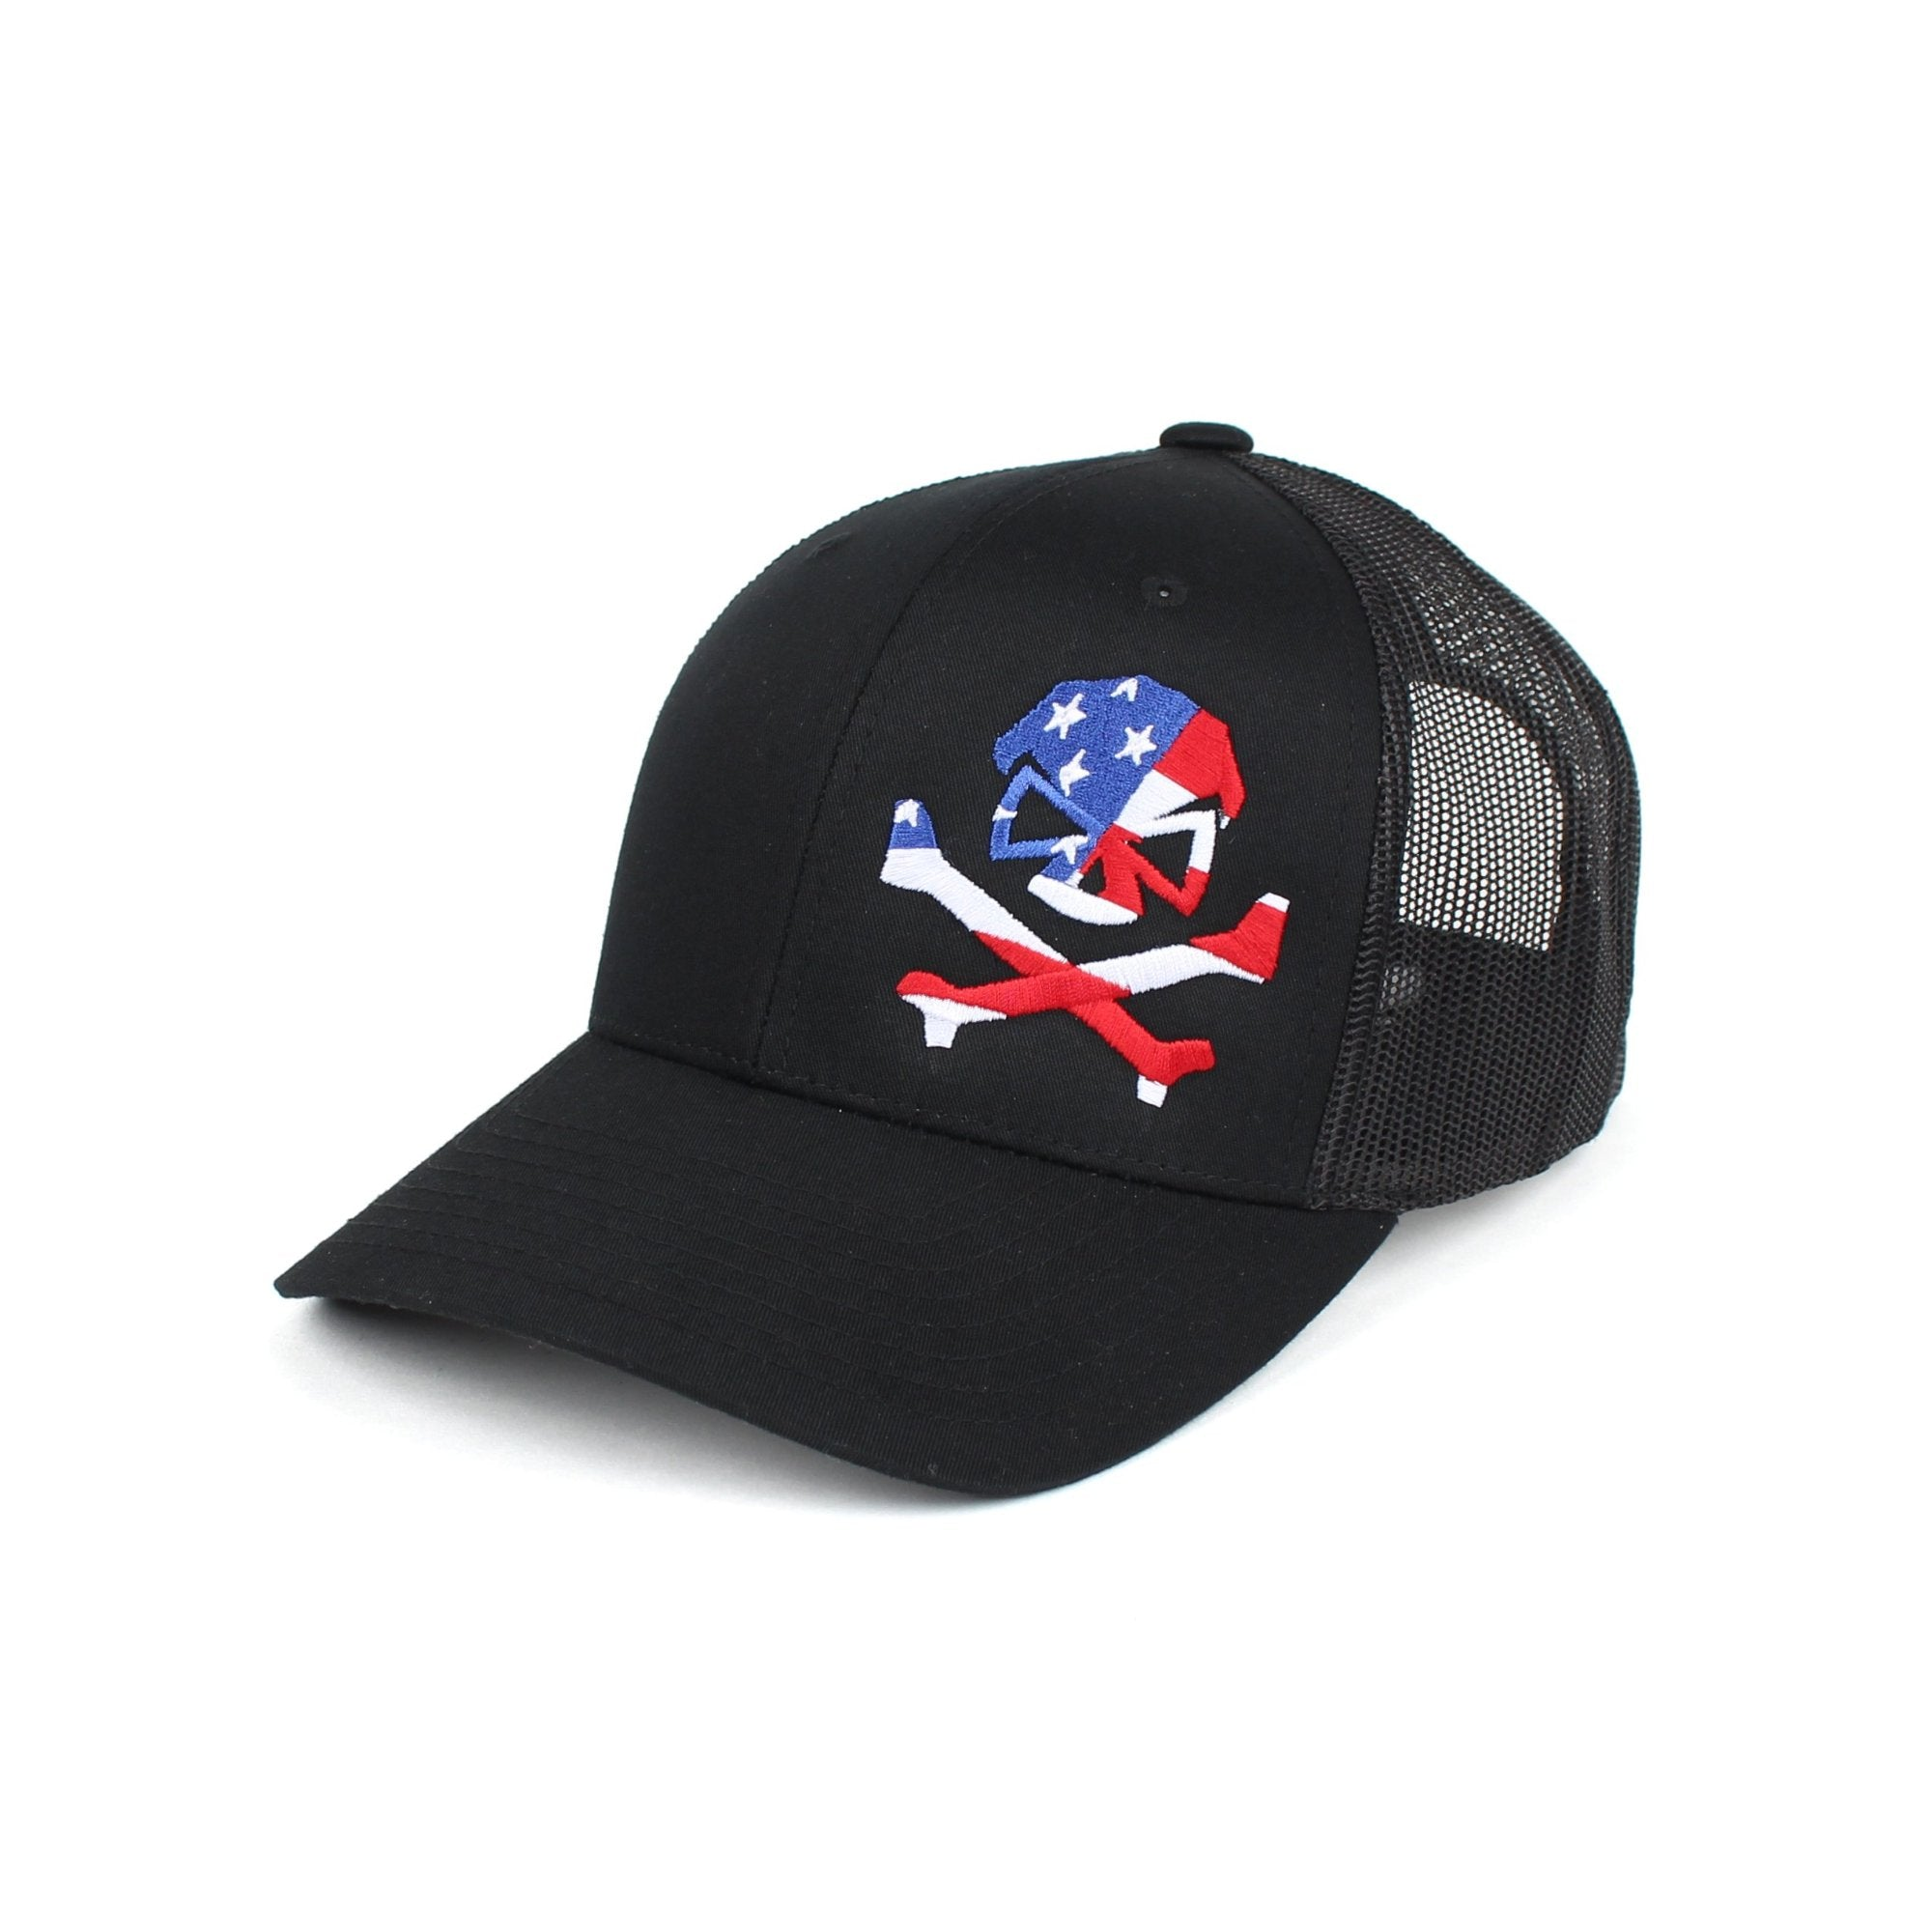 Patriot Trucker